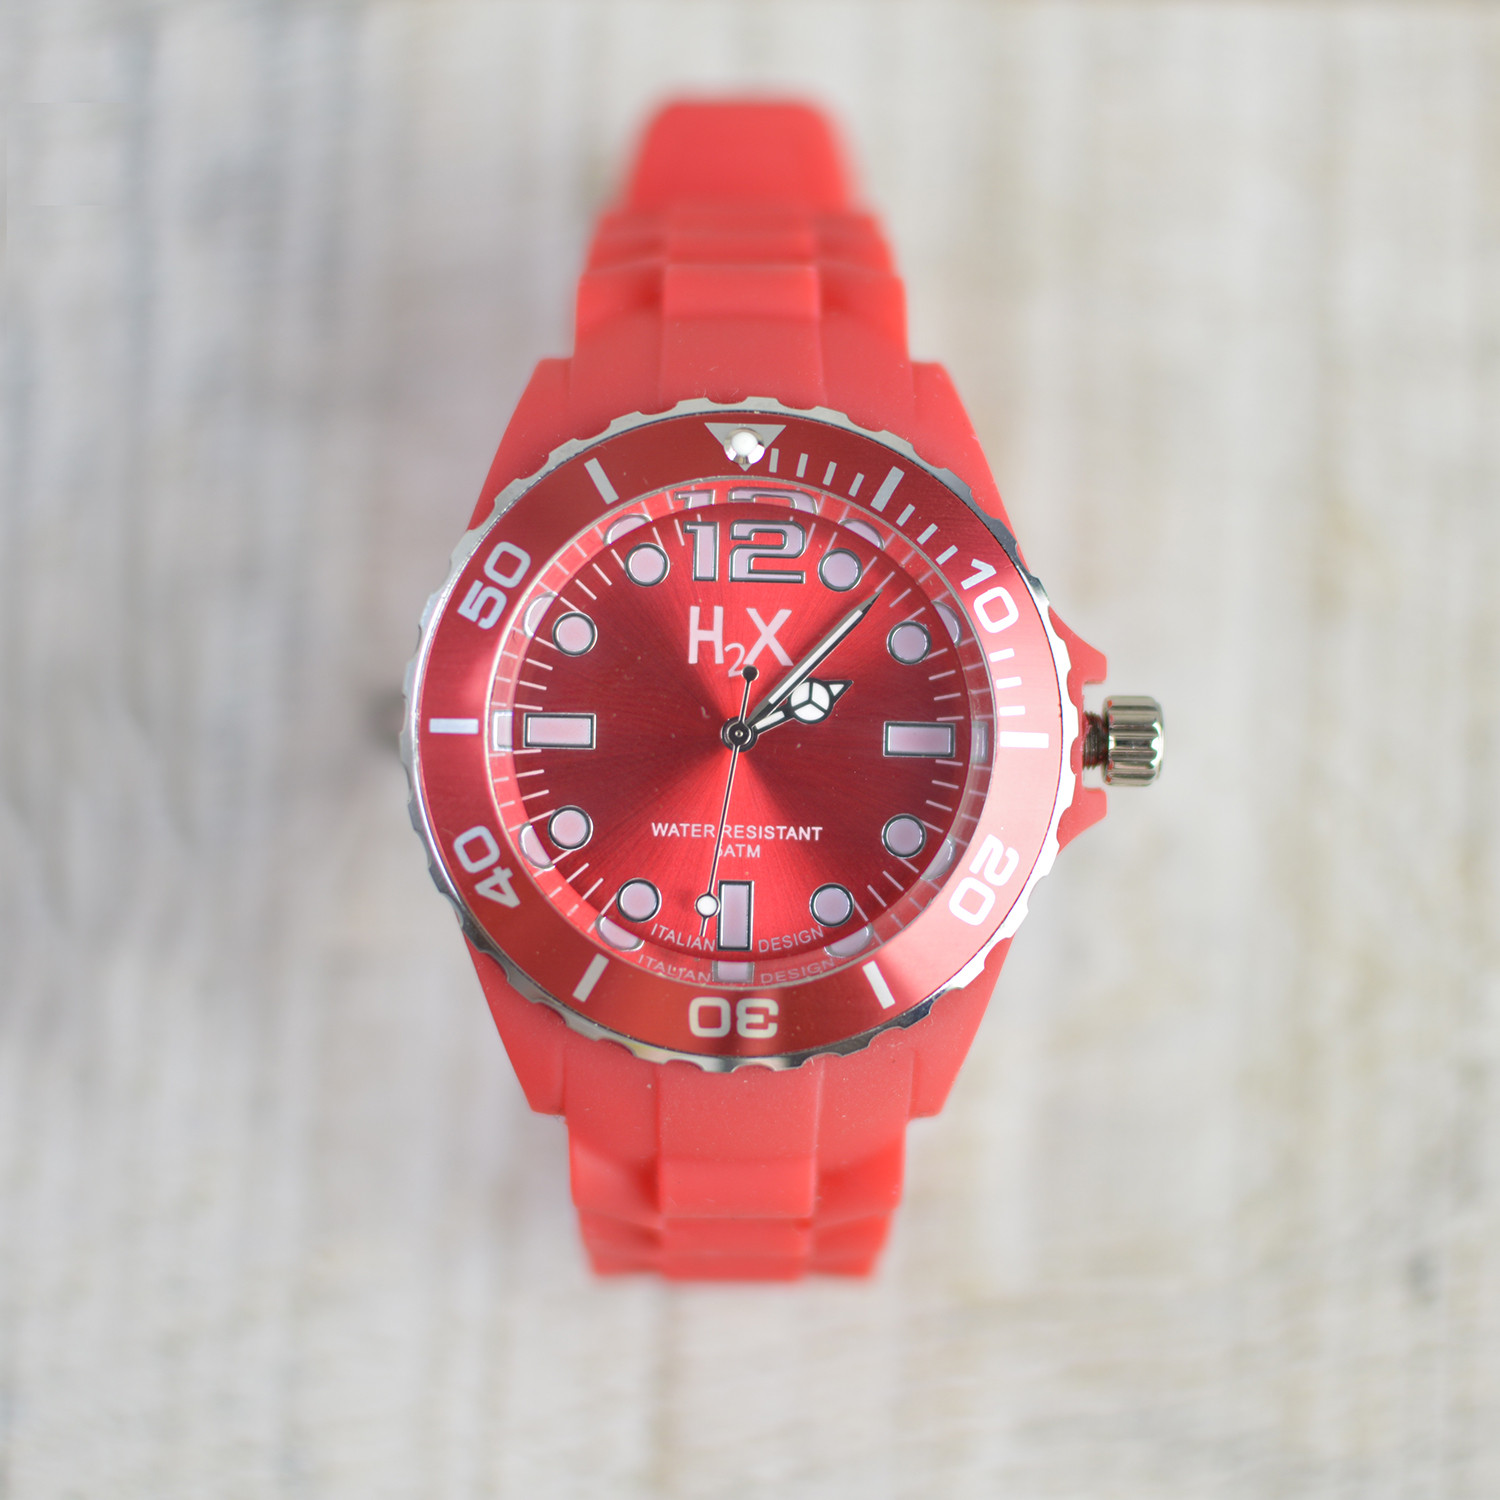 Wrist watch Red H2X Unisex Home, and More